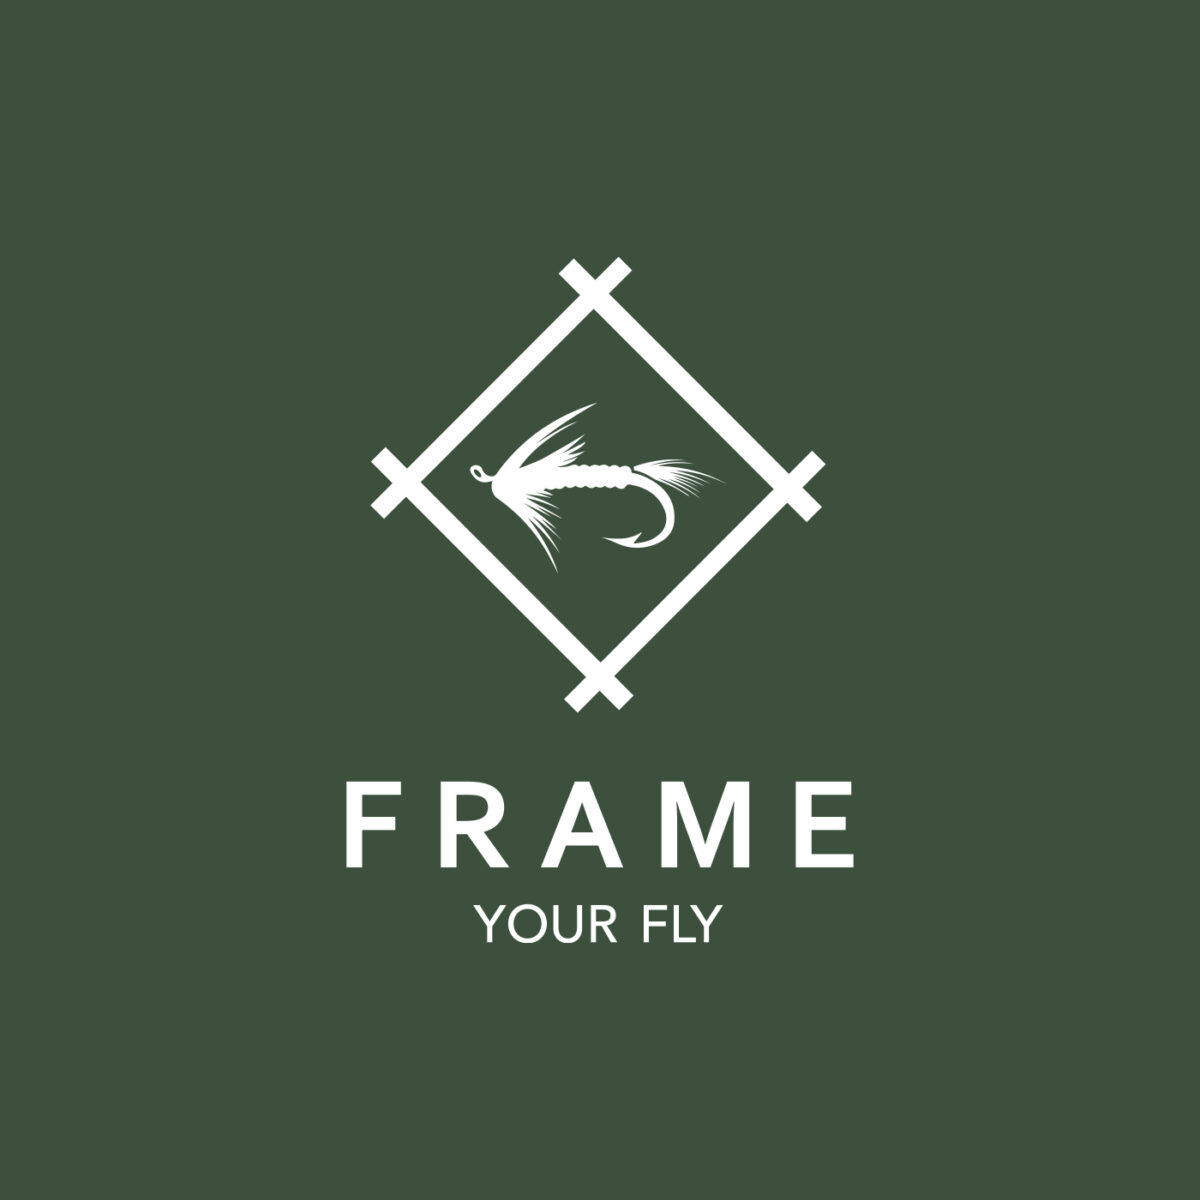 Huisstijl Frame your fly